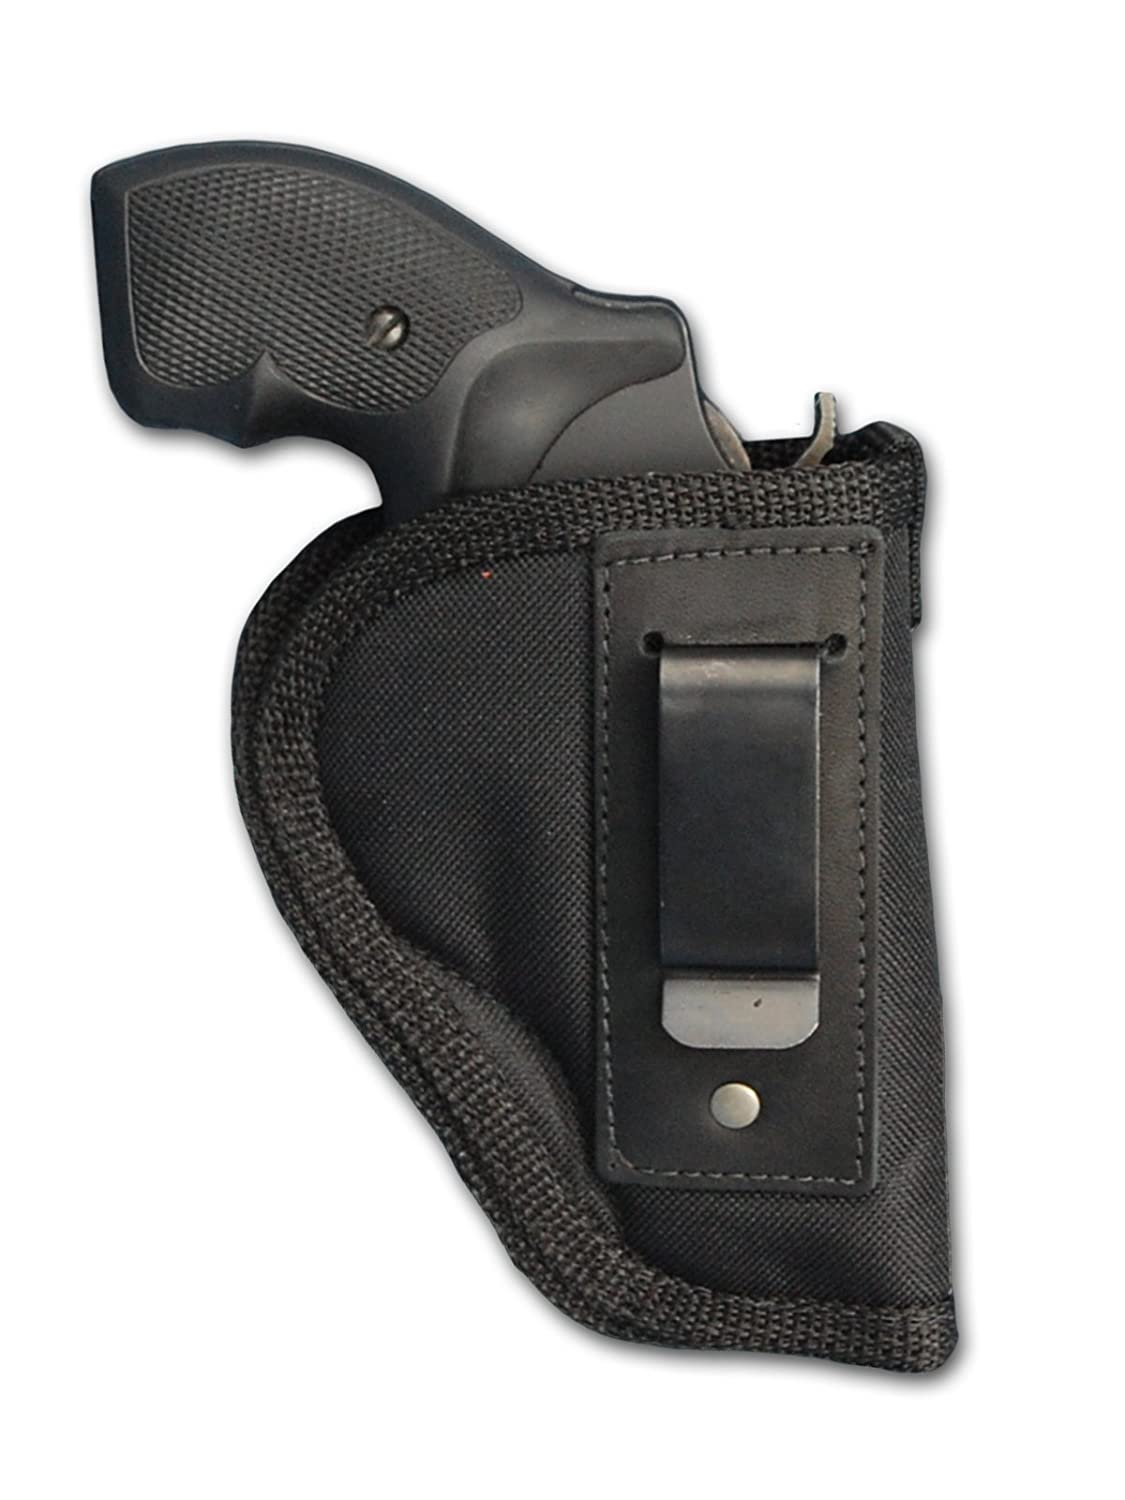 Holsters Nice New Barsony Black Leather Iwb Gun Holster For Beretta Taurus Mini 22 25 380 Soft And Light Holsters, Belts & Pouches